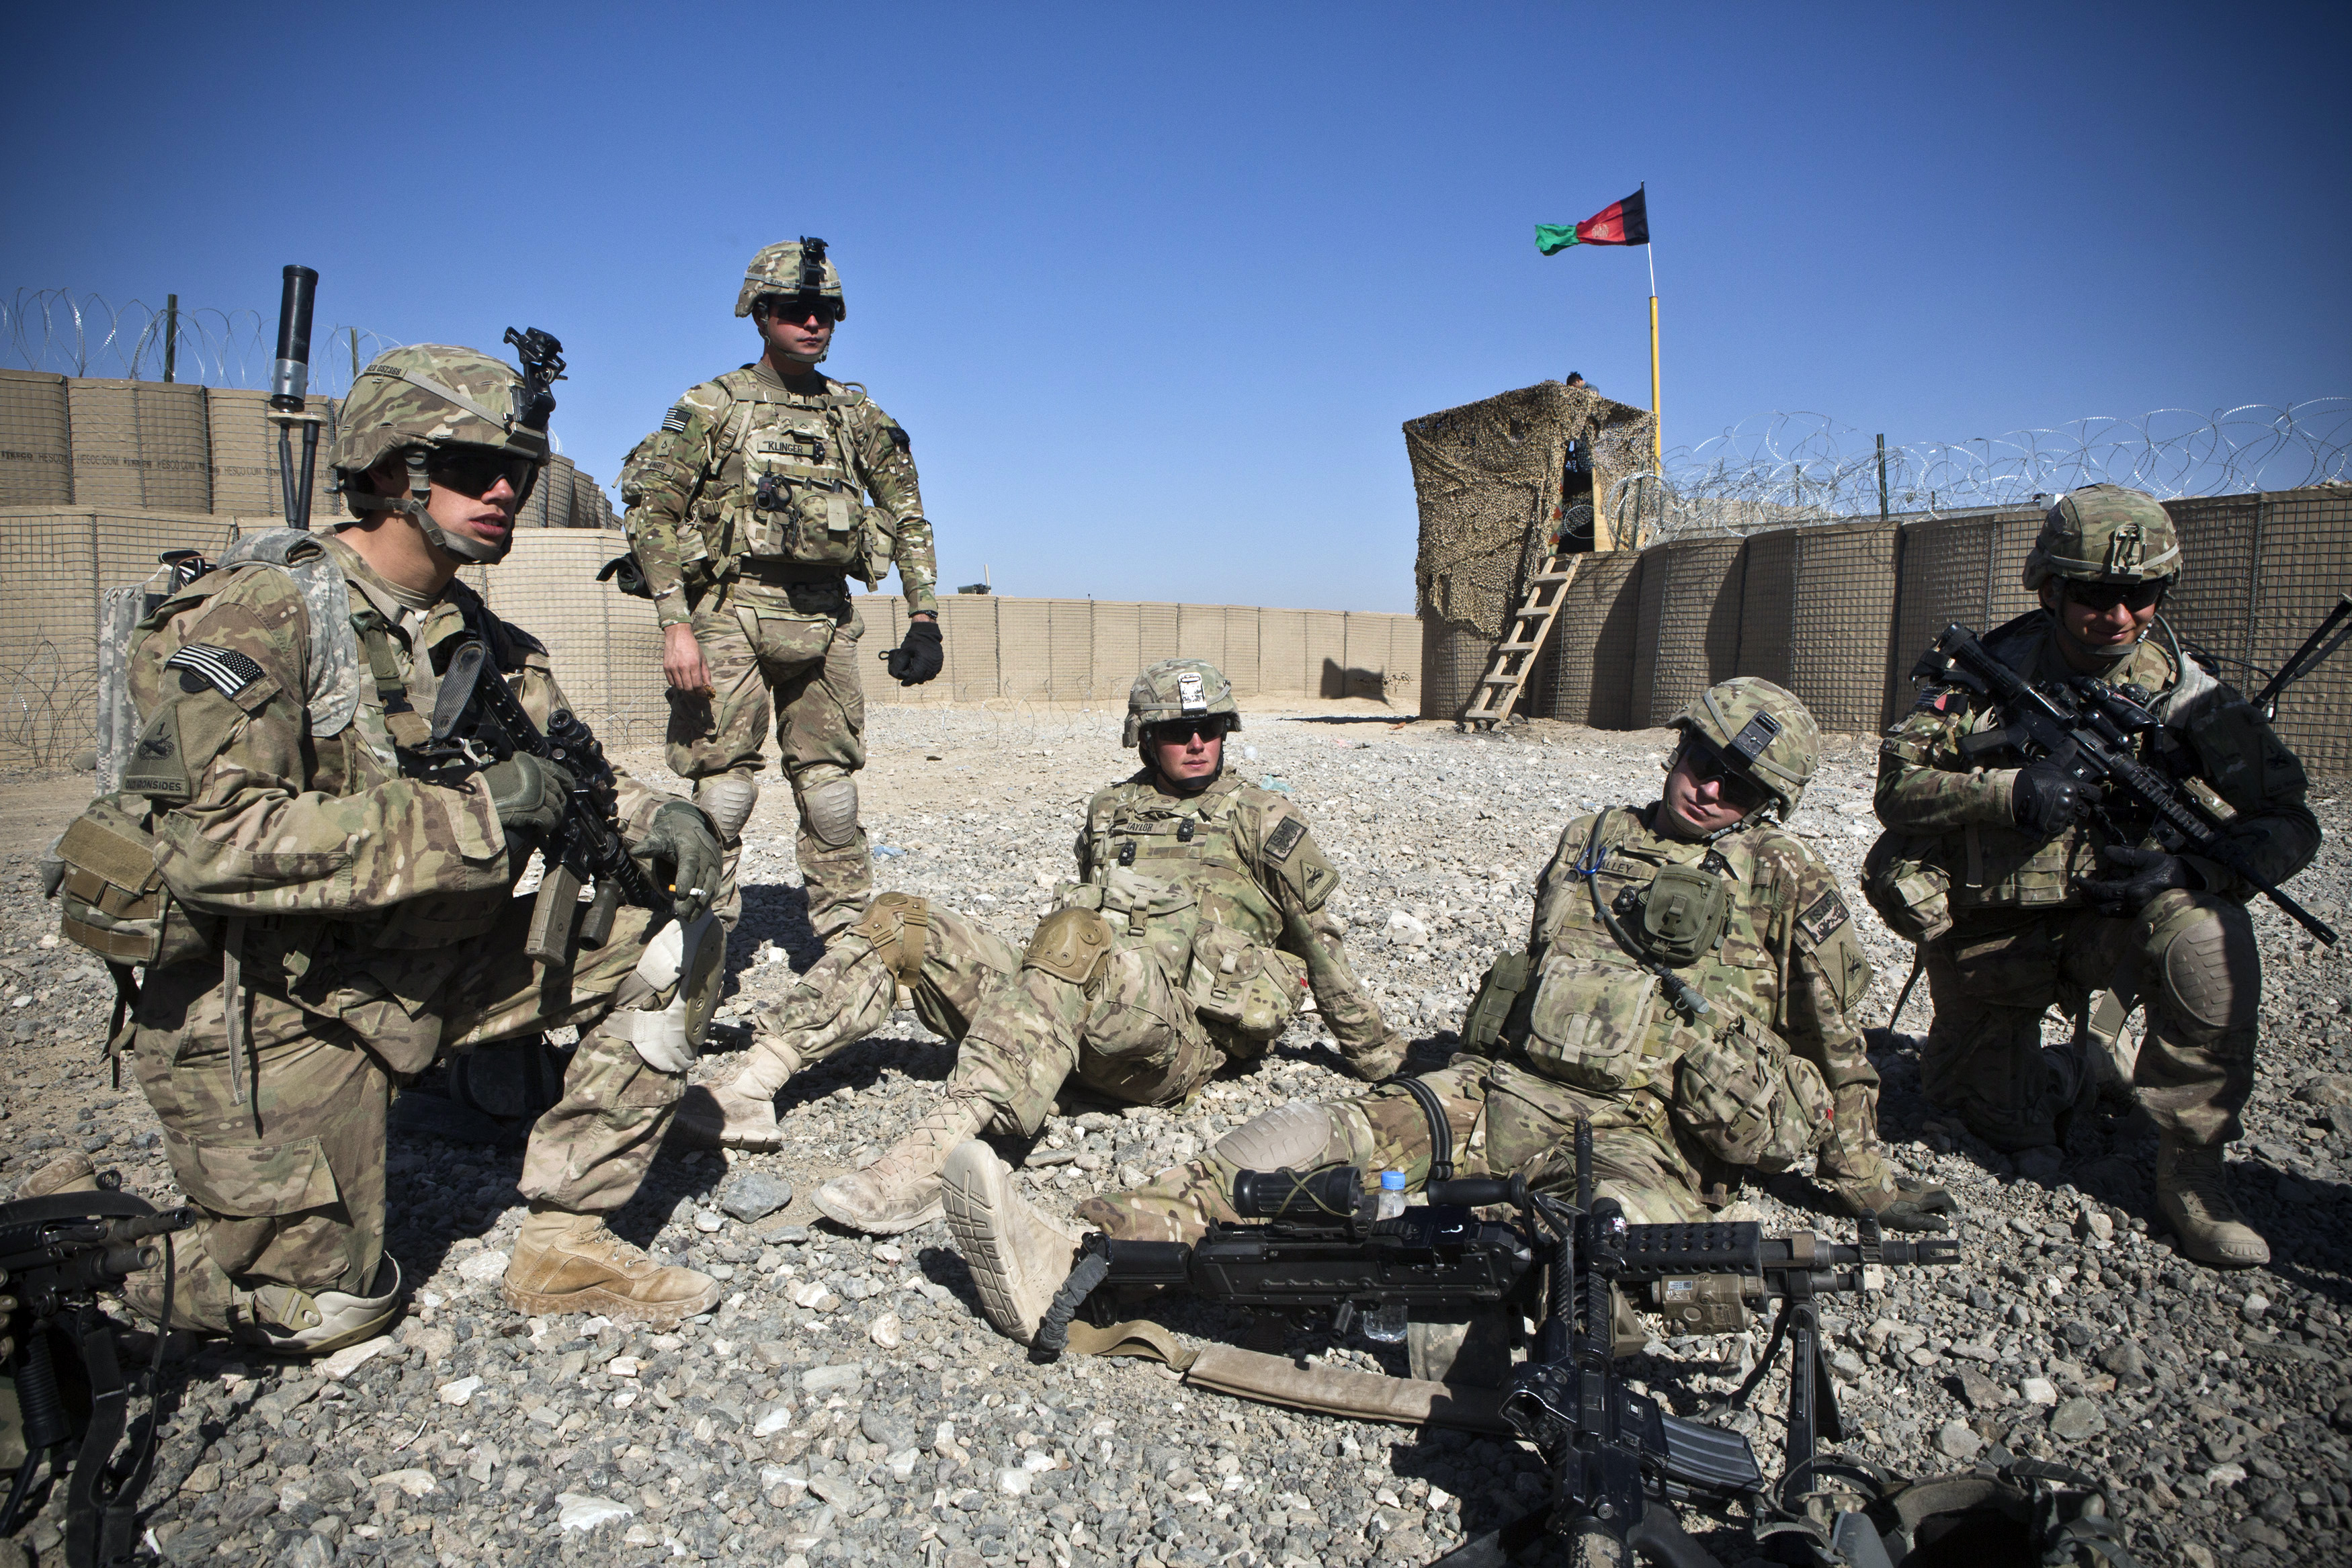 Soldiers with the U.S. Army's Bravo Company, 1st Battalion, 36th Infantry Regiment rest in an Afghan National Police compound before going on patrol near Command Outpost AJK in Maiwand District, Kandahar Province, Afghanistan on Jan. 24, 2013.